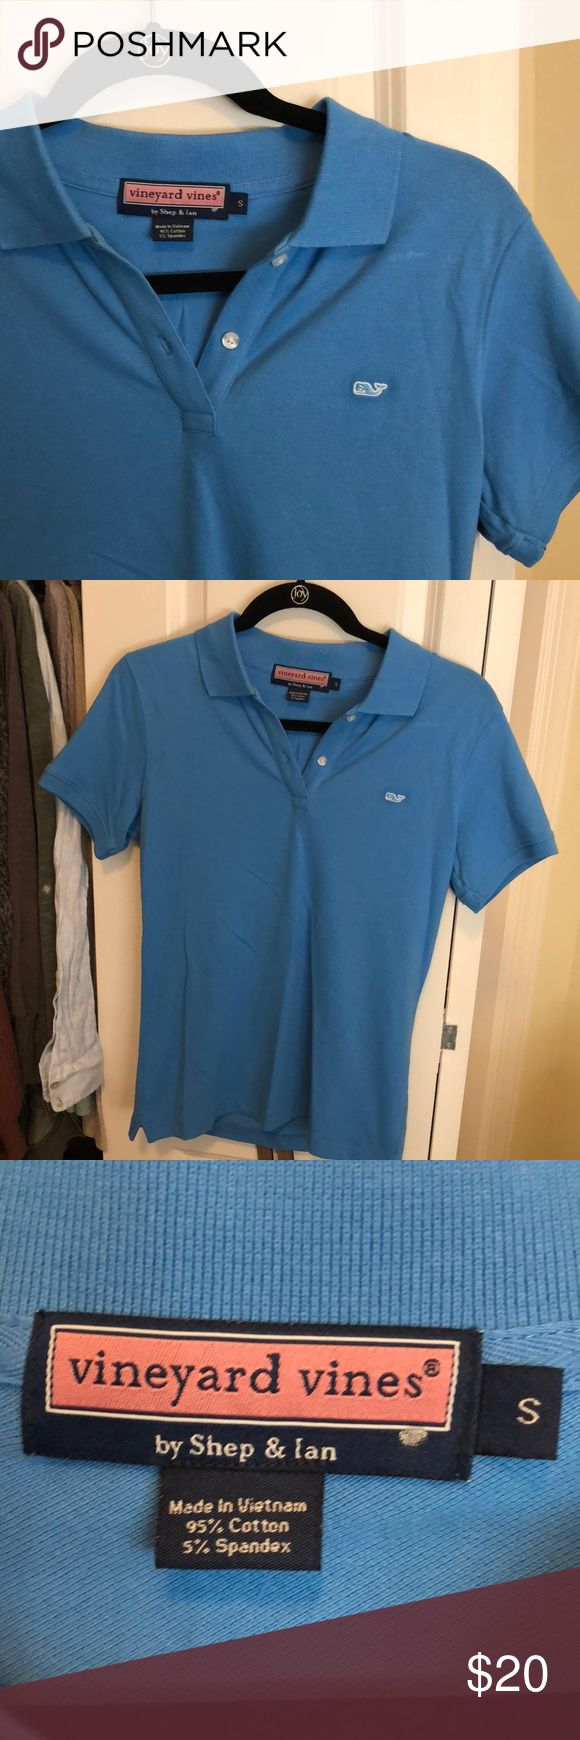 Vineyard Vines Women's Polo NWOT From the outlet. Perfect condition!! Vineyard Vines Tops Button Down Shirts